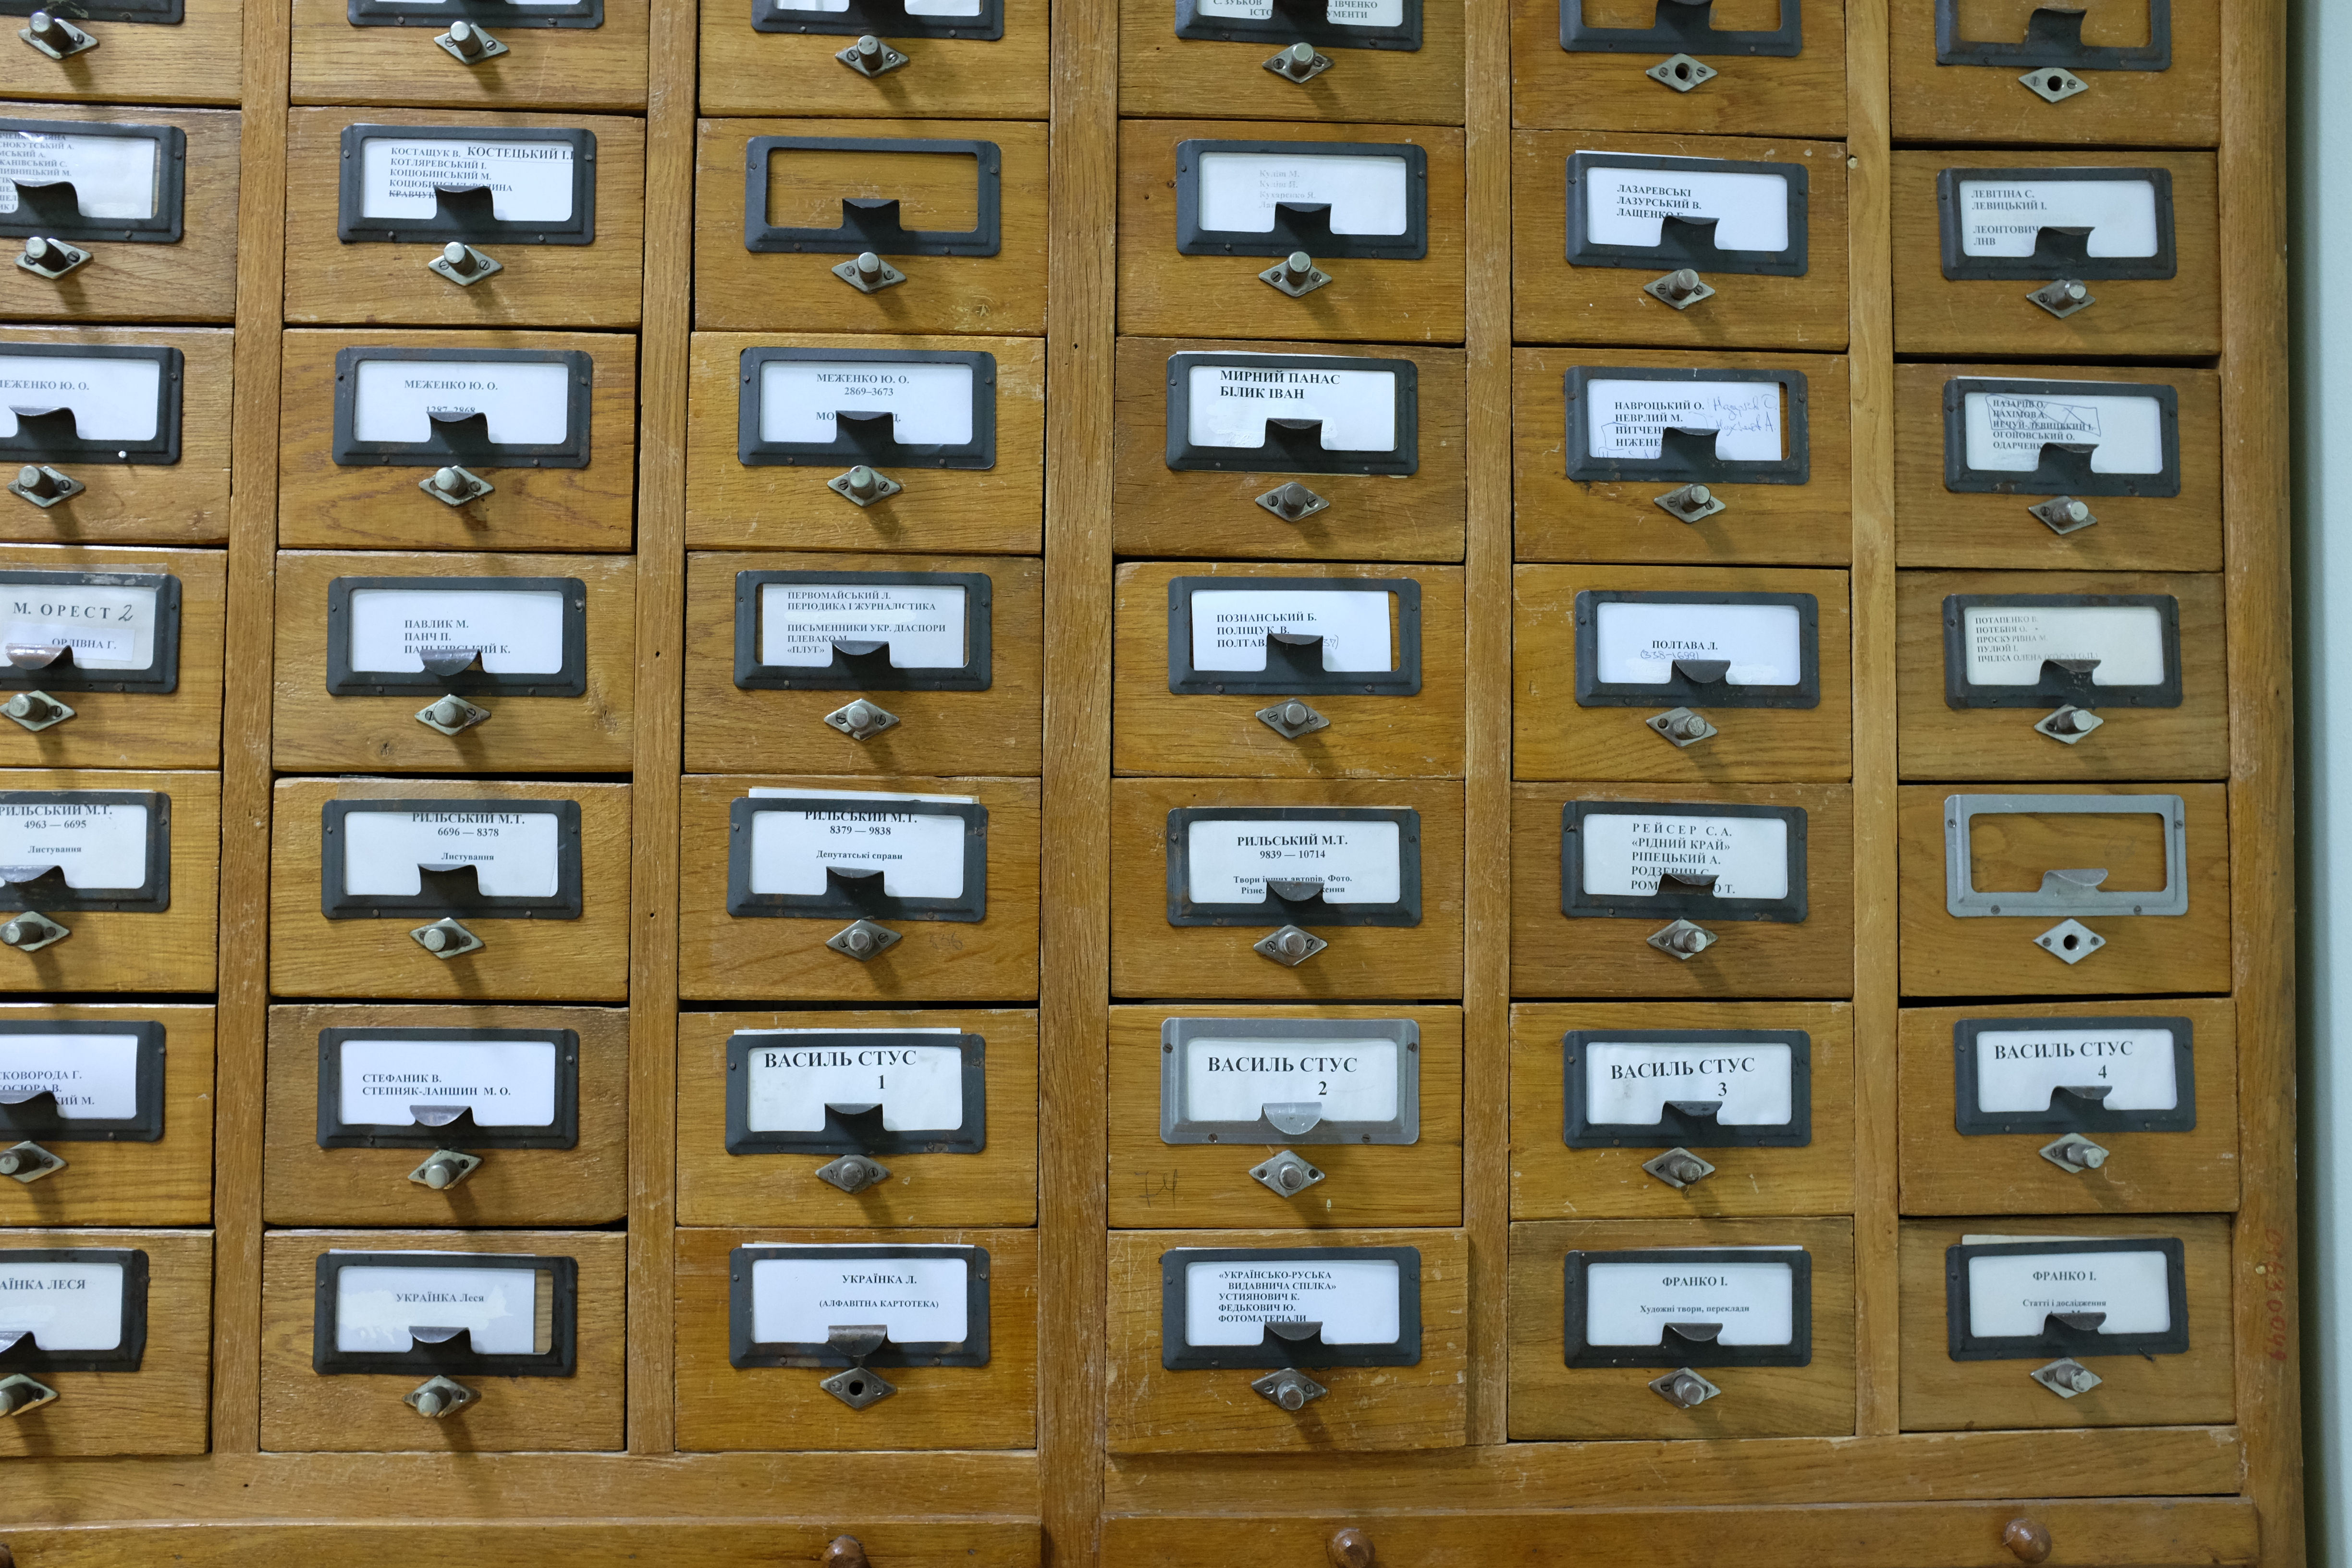 The card catalogue at the T. H. Shevchenko Institute of Literature of the National Academy of Sciences of Ukraine, Kyiv.